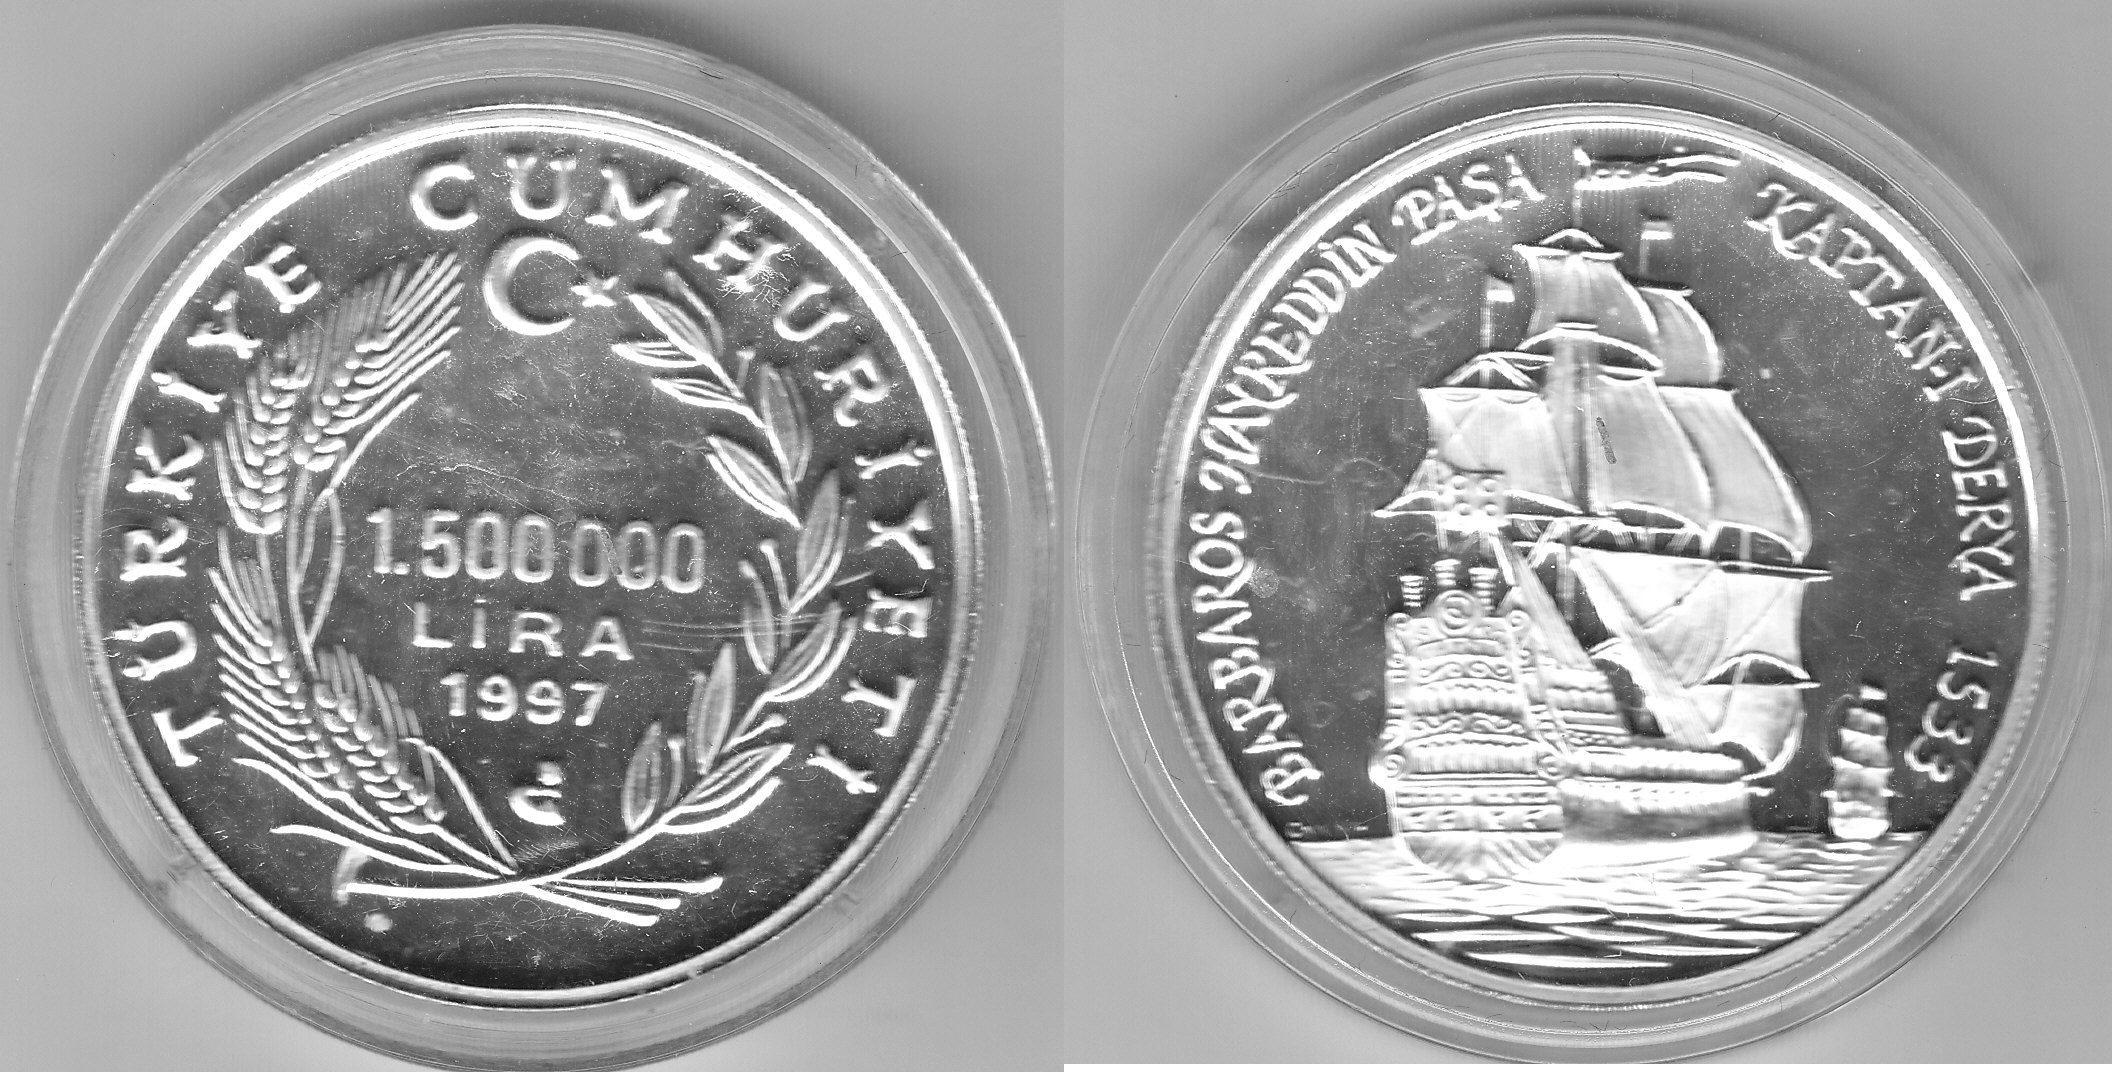 Türkei 1.500.000 Lira 1997 Barbaros proof